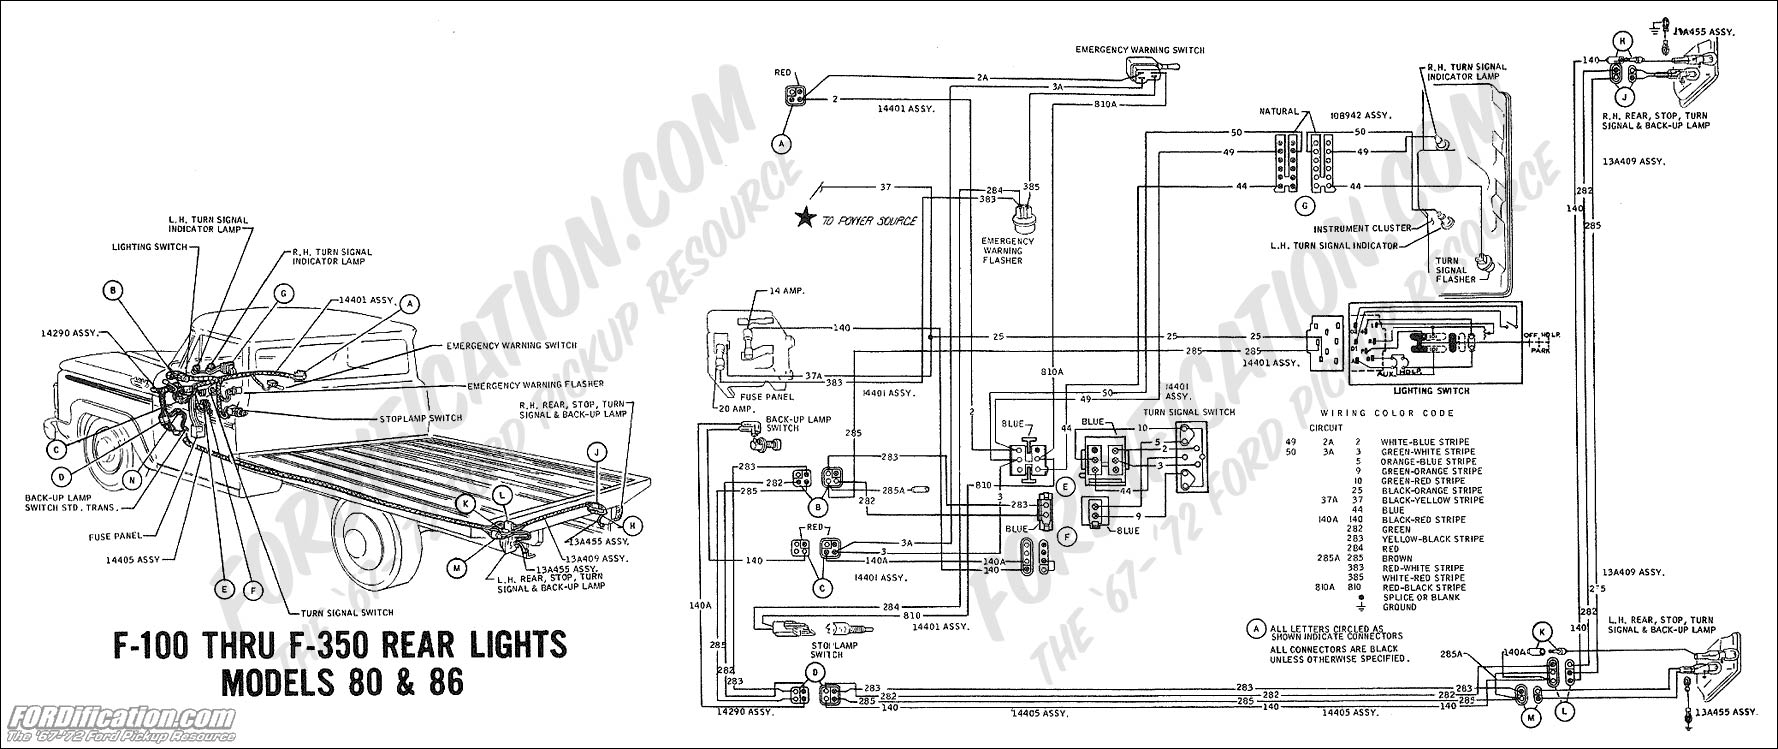 RepairGuideContent besides Basic Wiring Diagram further Schematics h likewise Ford 2000 Tractor Parts Diagram further RepairGuideContent. on bronco alternator wiring